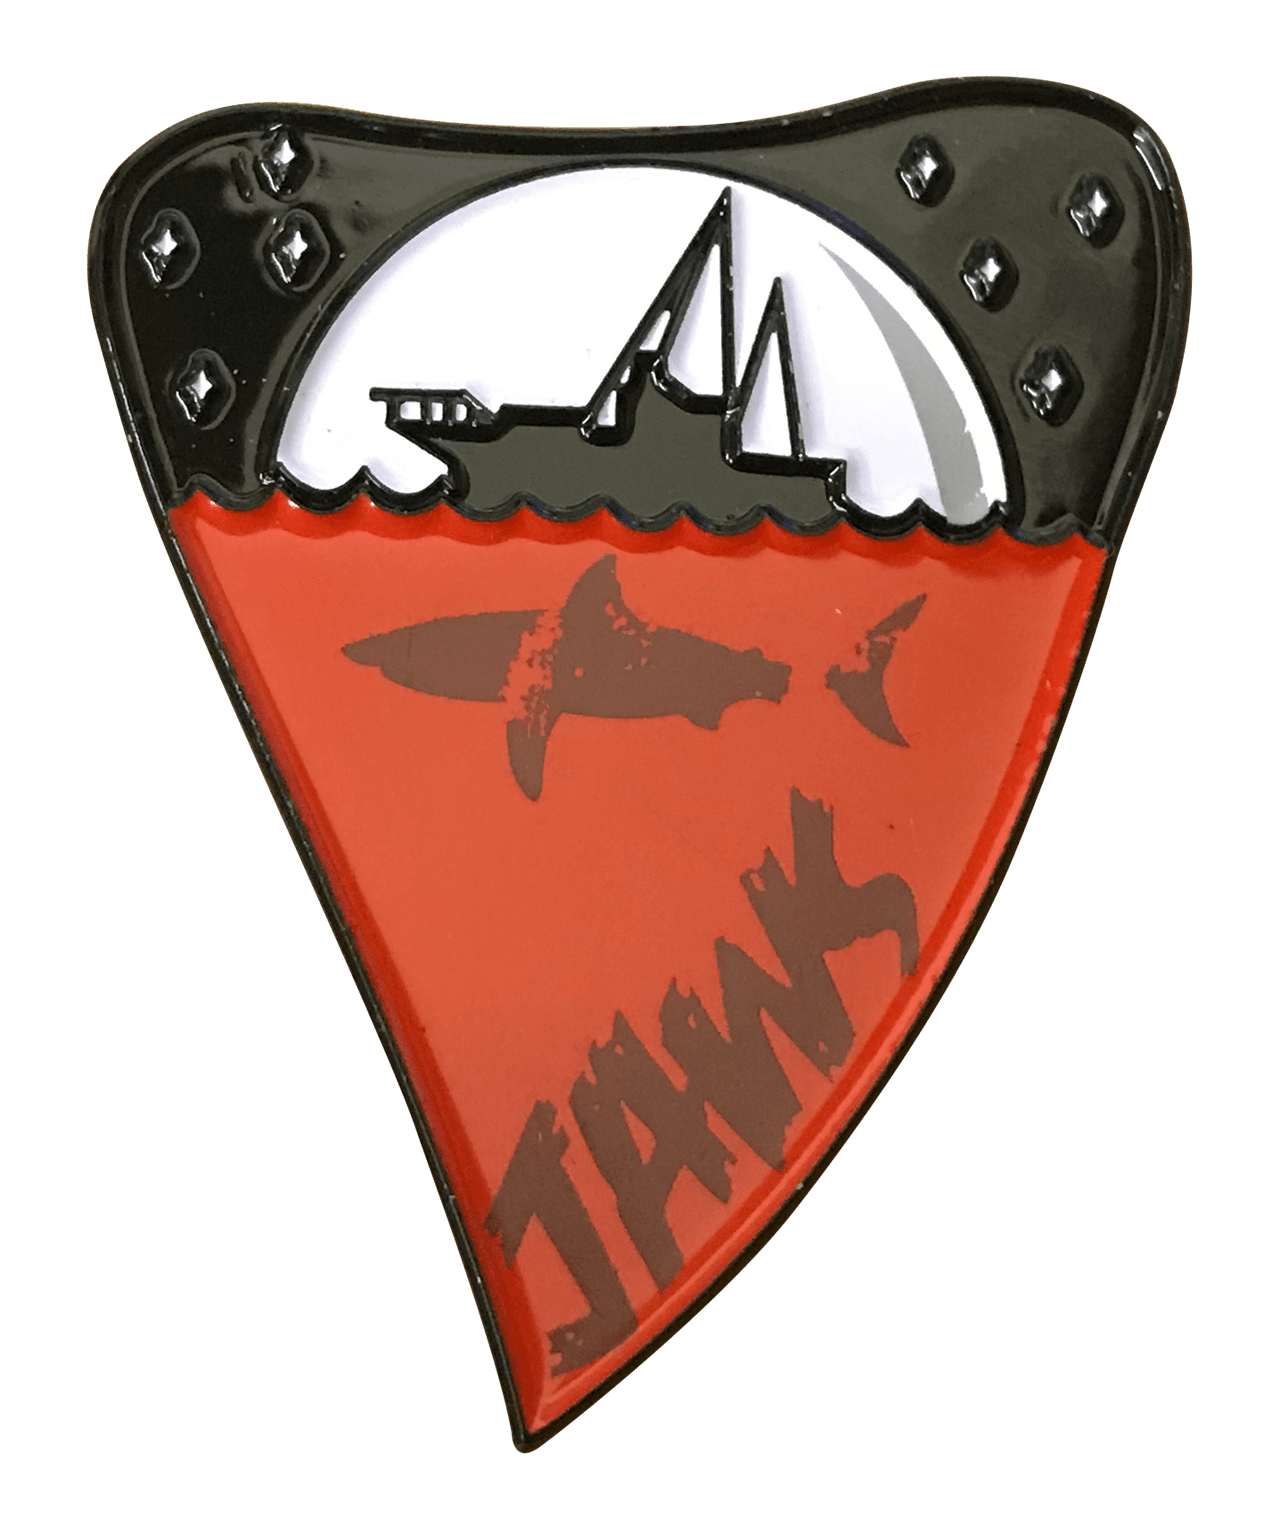 Jaws Pin Badge - 1